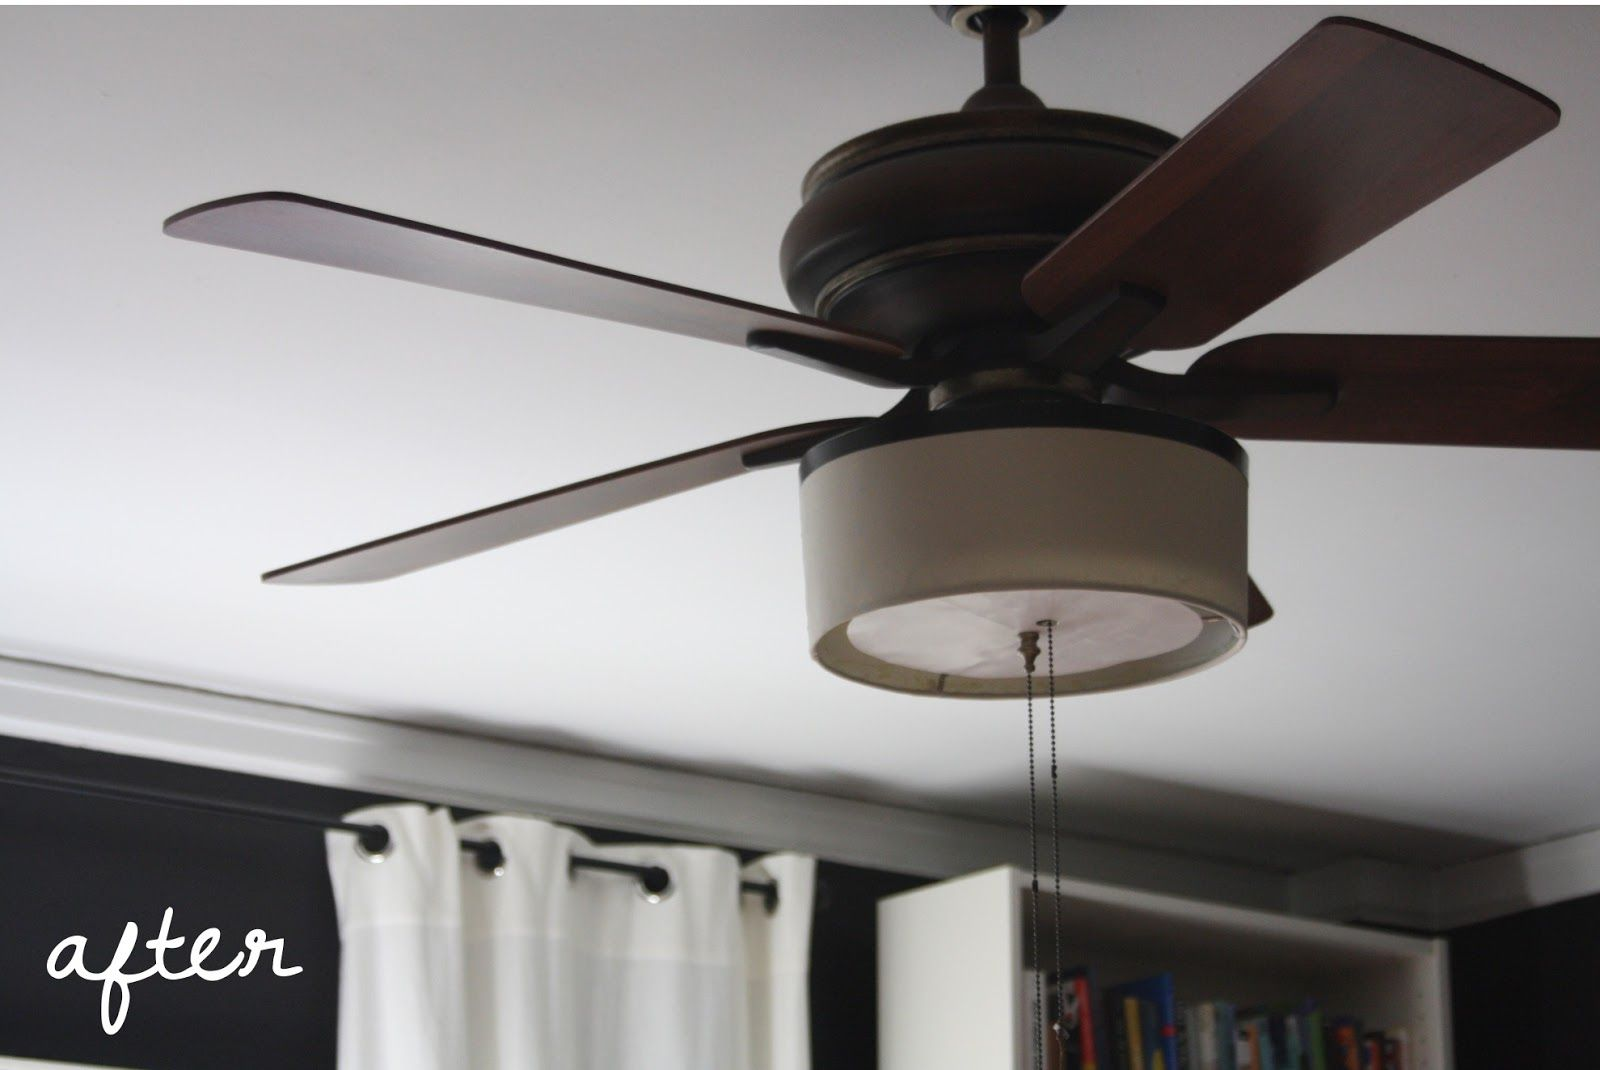 Add A Drum Shade To Your Ceiling Fan In 5 Minutes And Drums